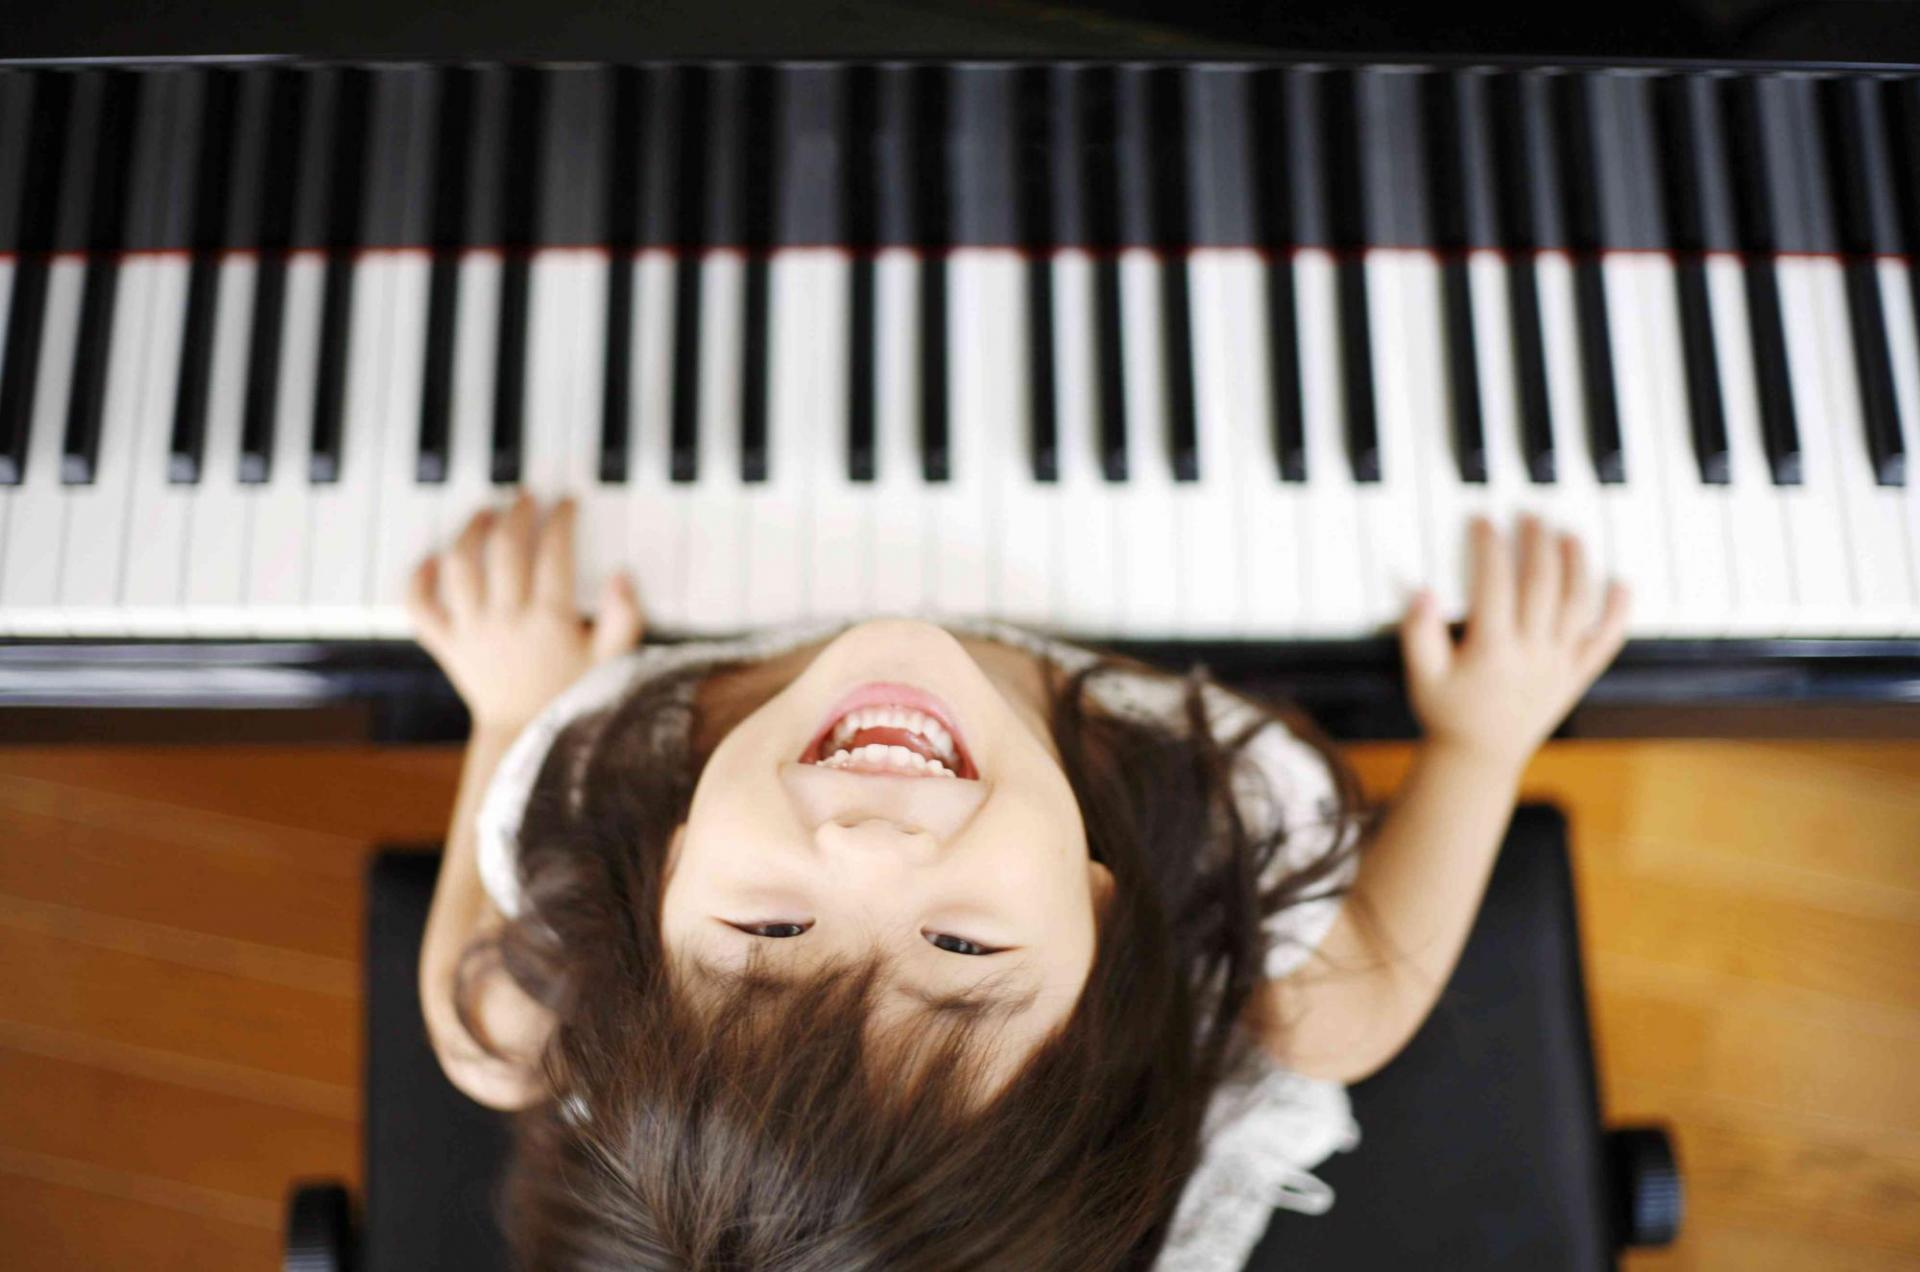 Recommended Keyboards for Beginner Piano Practice